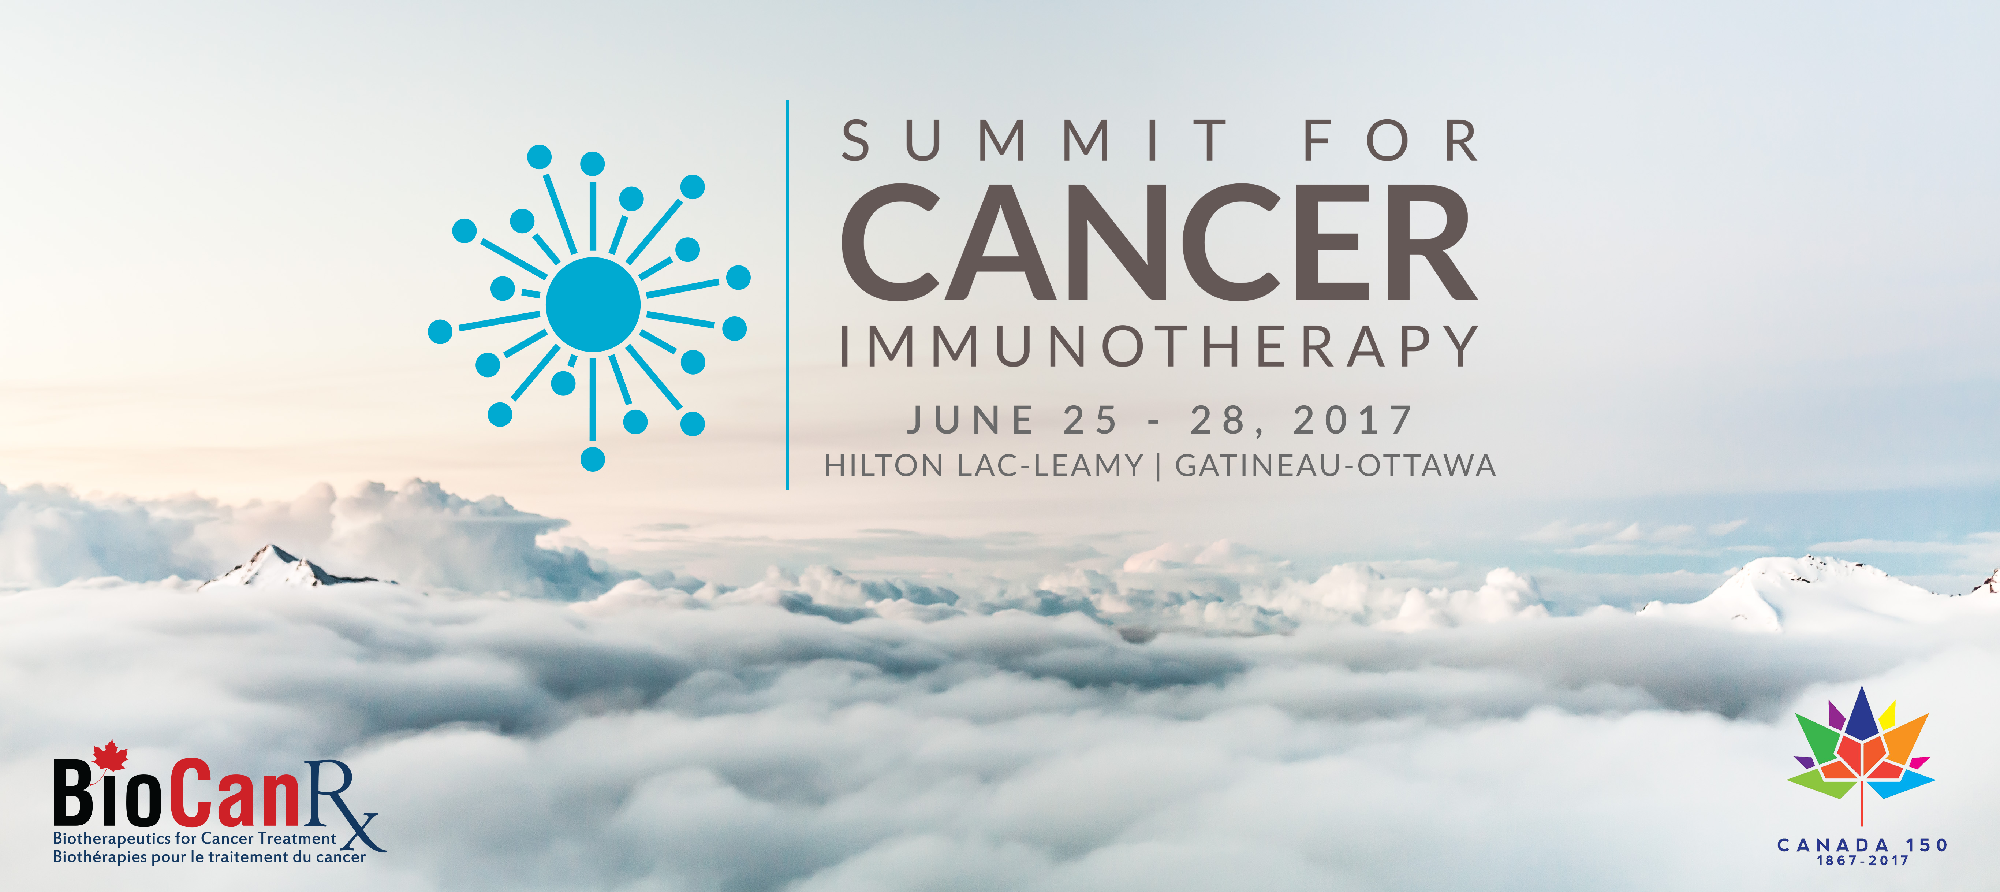 Save the Date! Summit for Cancer Immunotherapy 2017